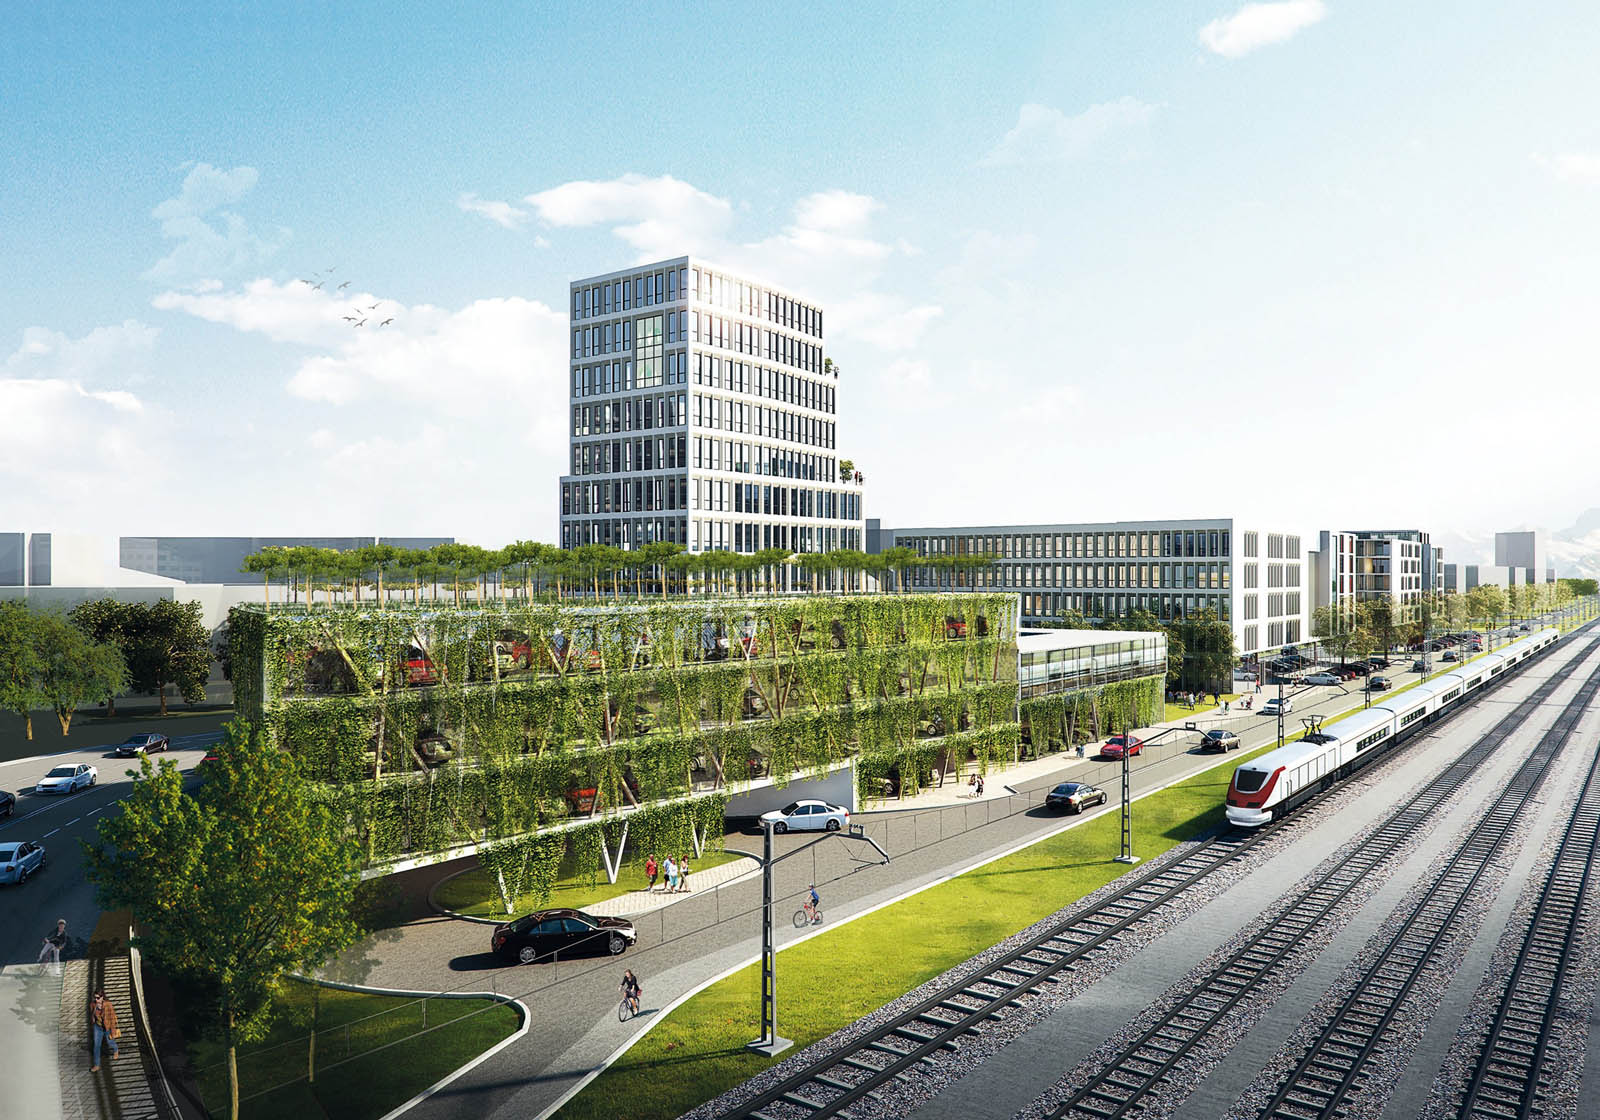 North Station Site, Rosenheim, DE